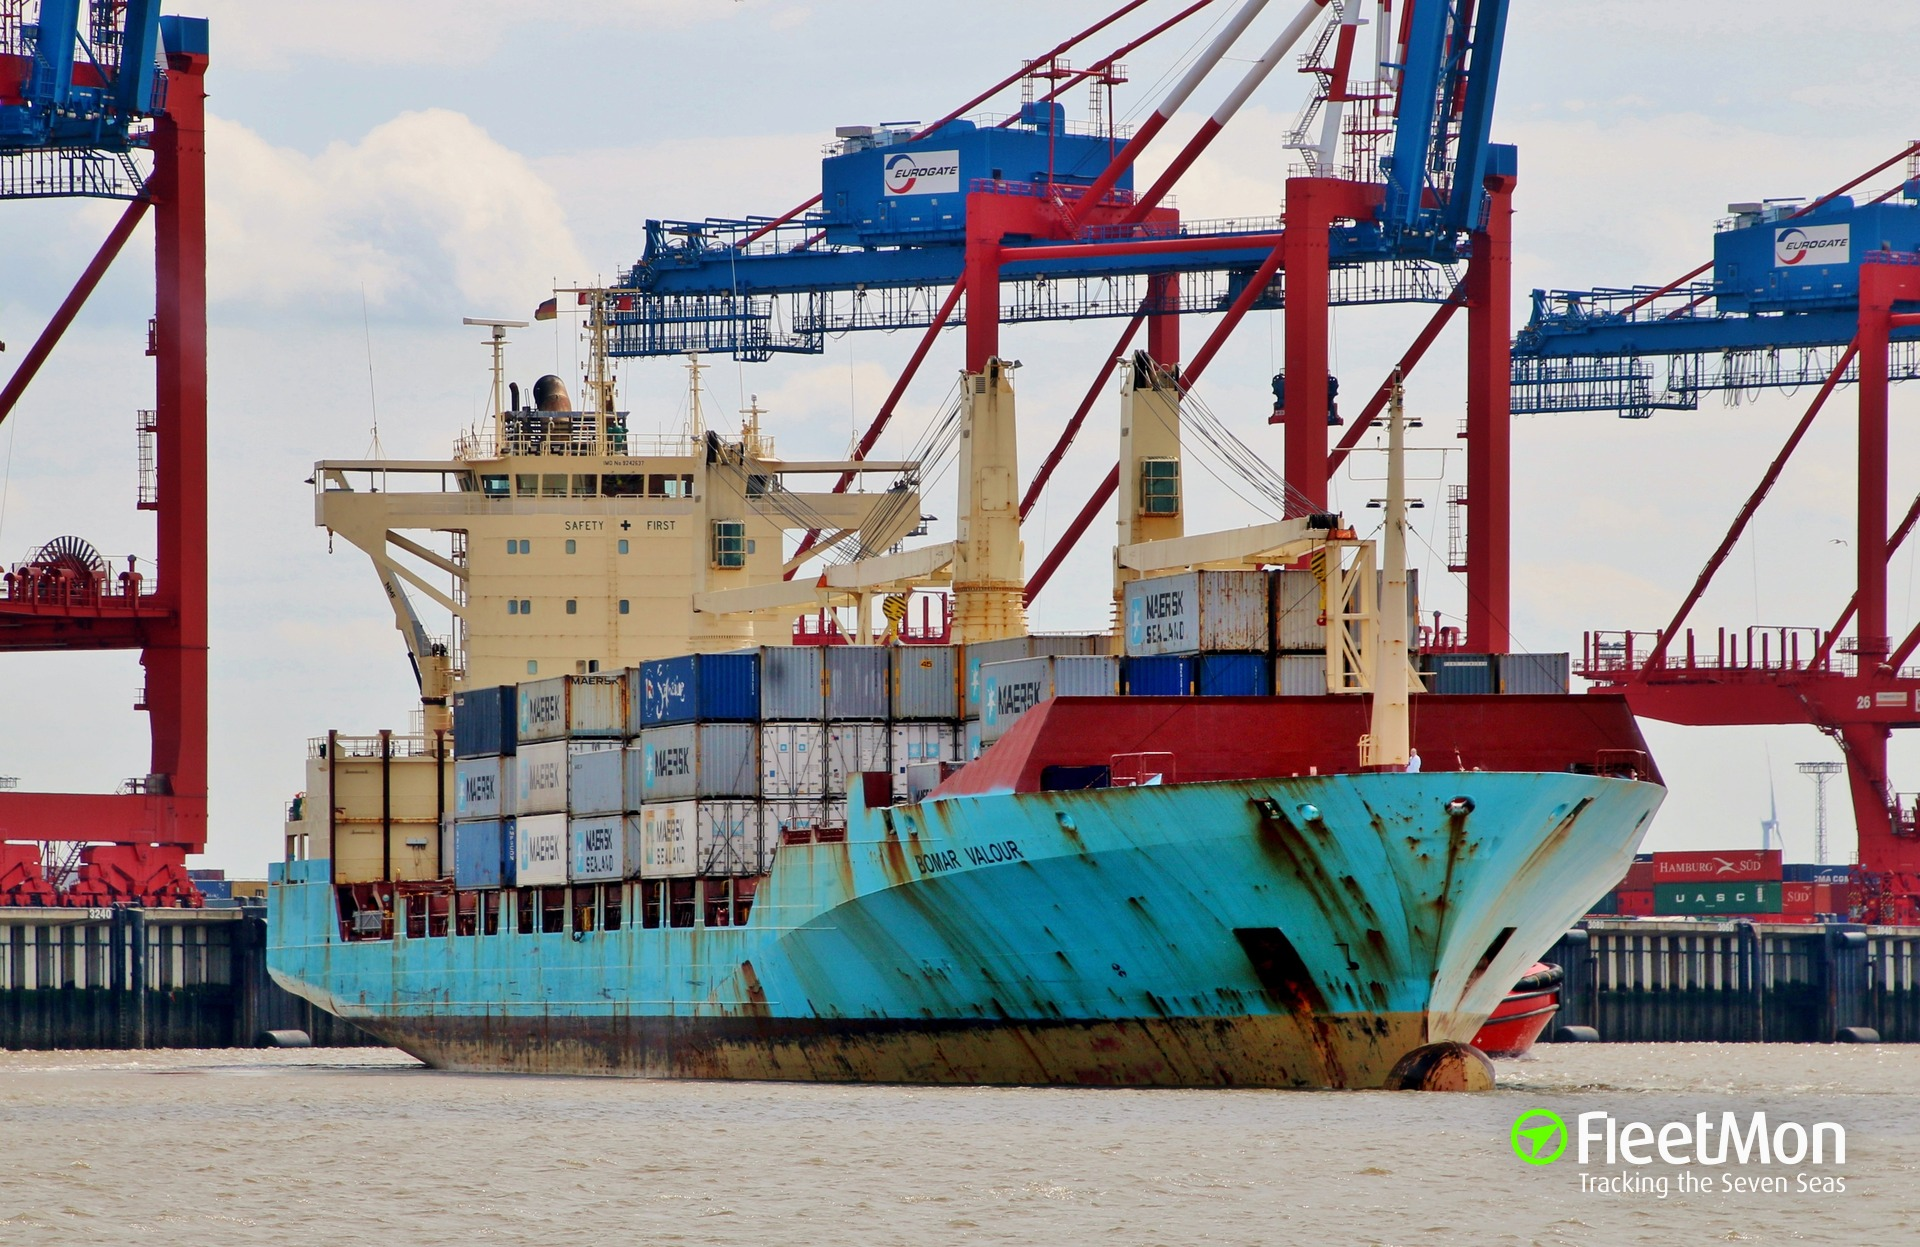 Three Maersk container ships are stranded in Bremerhaven since July 14